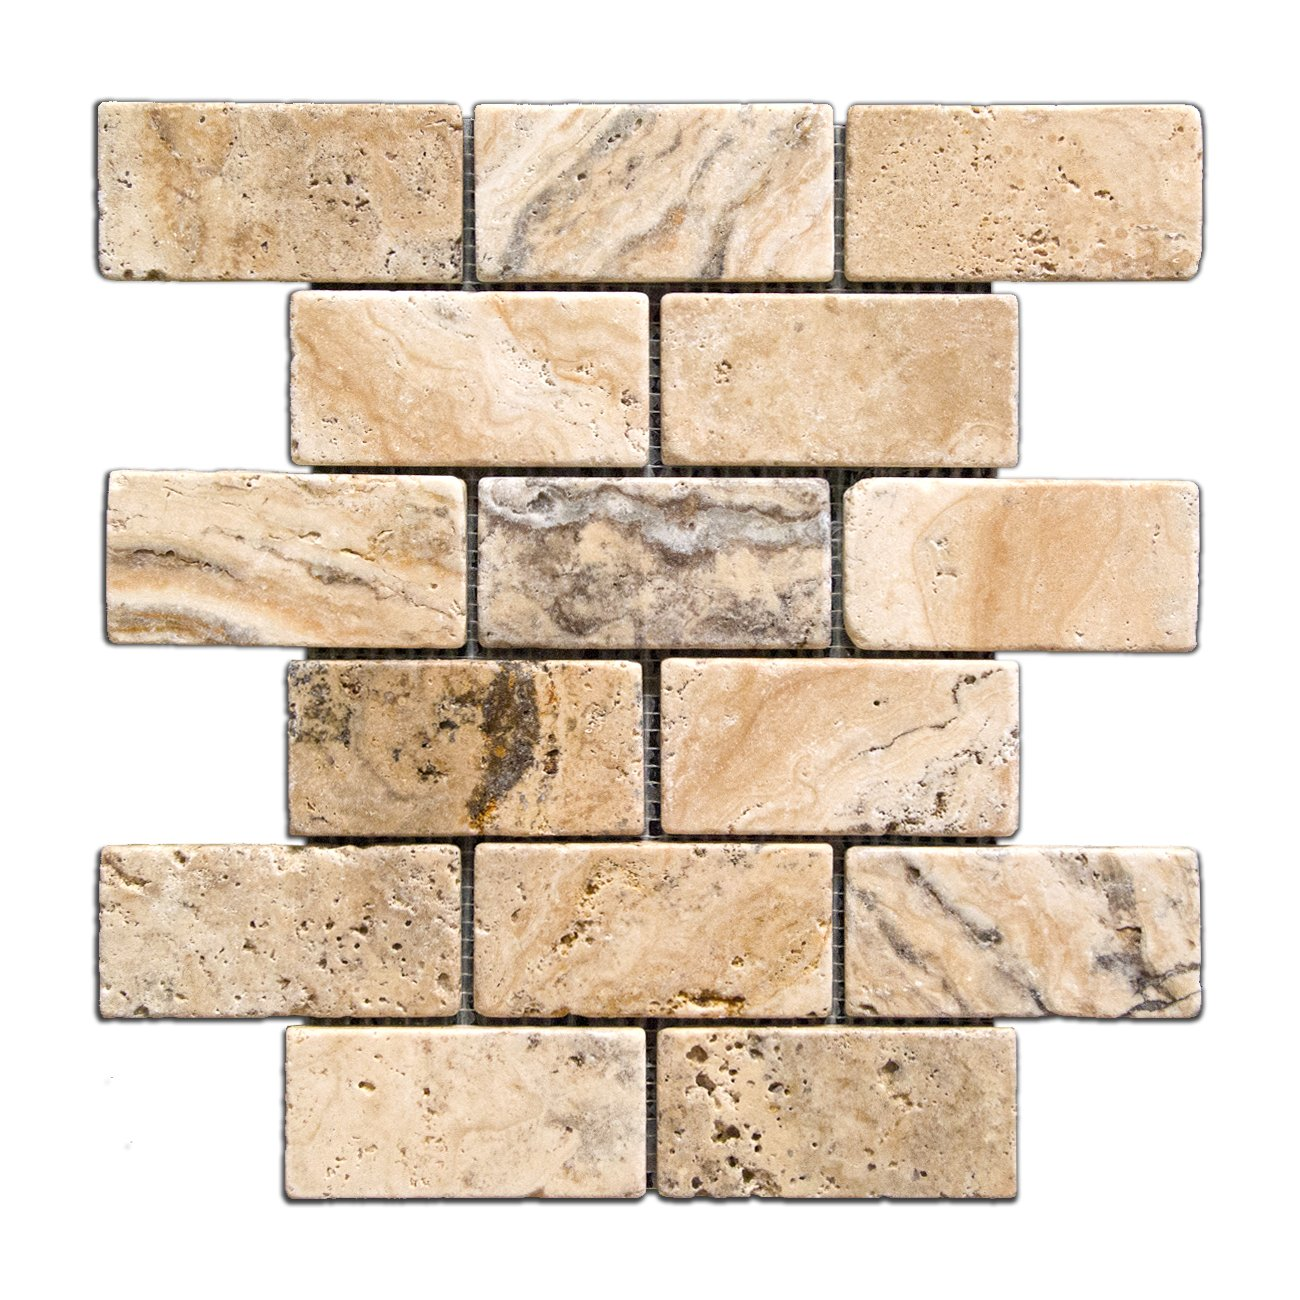 Philadelphia 2 x 4 tumbled travertine brick mosaic tile 6 x 6 philadelphia 2 x 4 tumbled travertine brick mosaic tile 6 x 6 sample marble tiles amazon dailygadgetfo Images